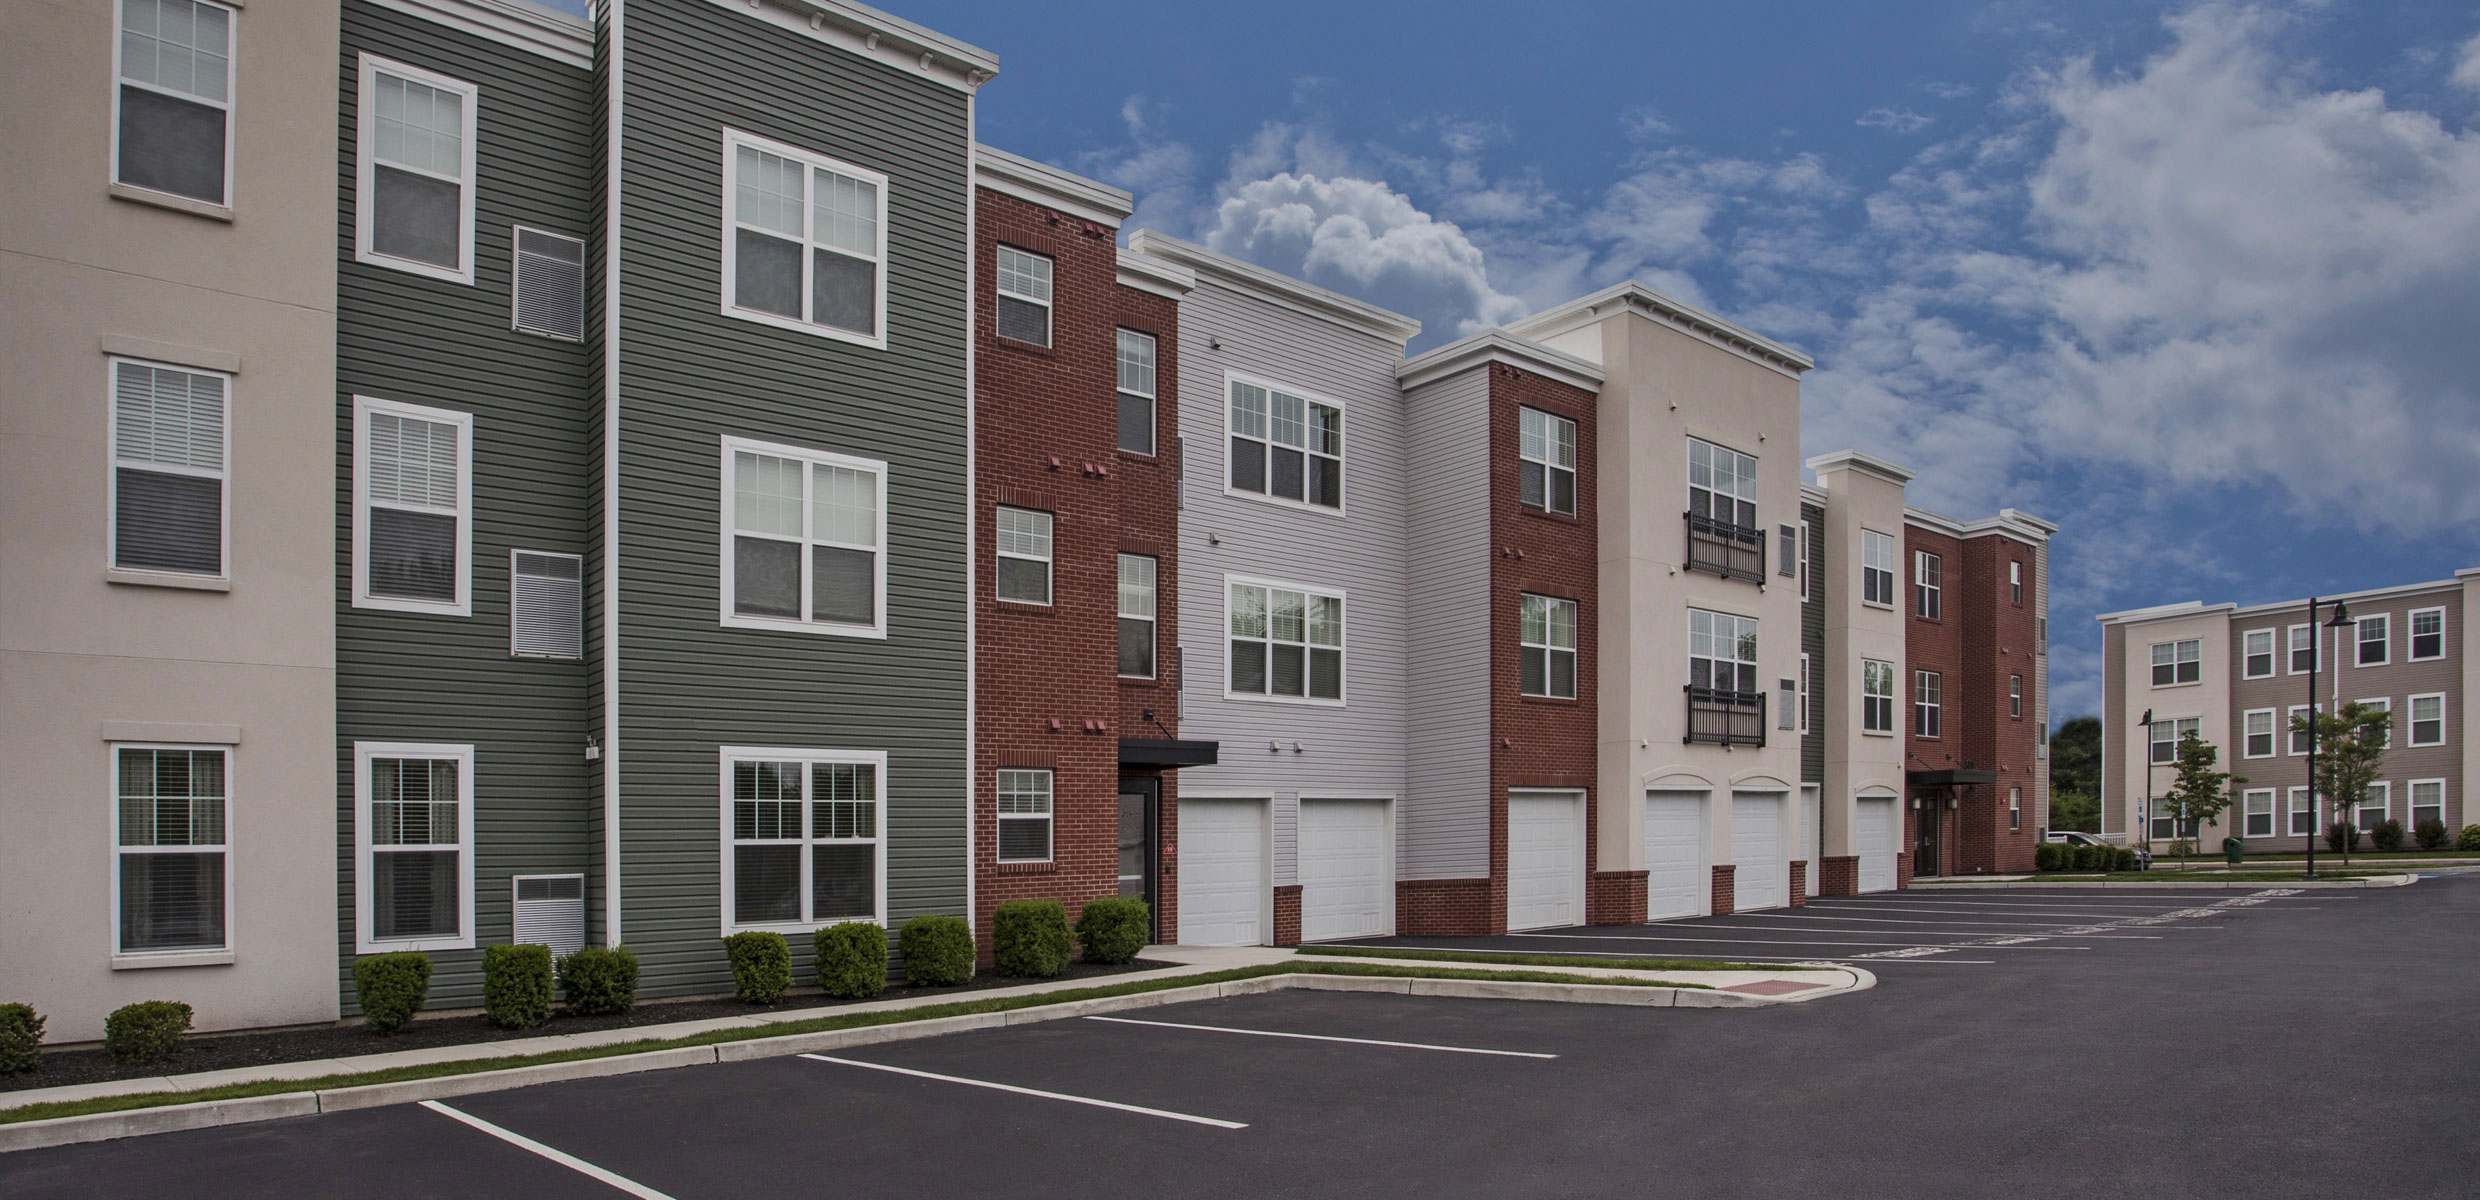 Dwell Cherry Hill Luxury Apartments Exterior